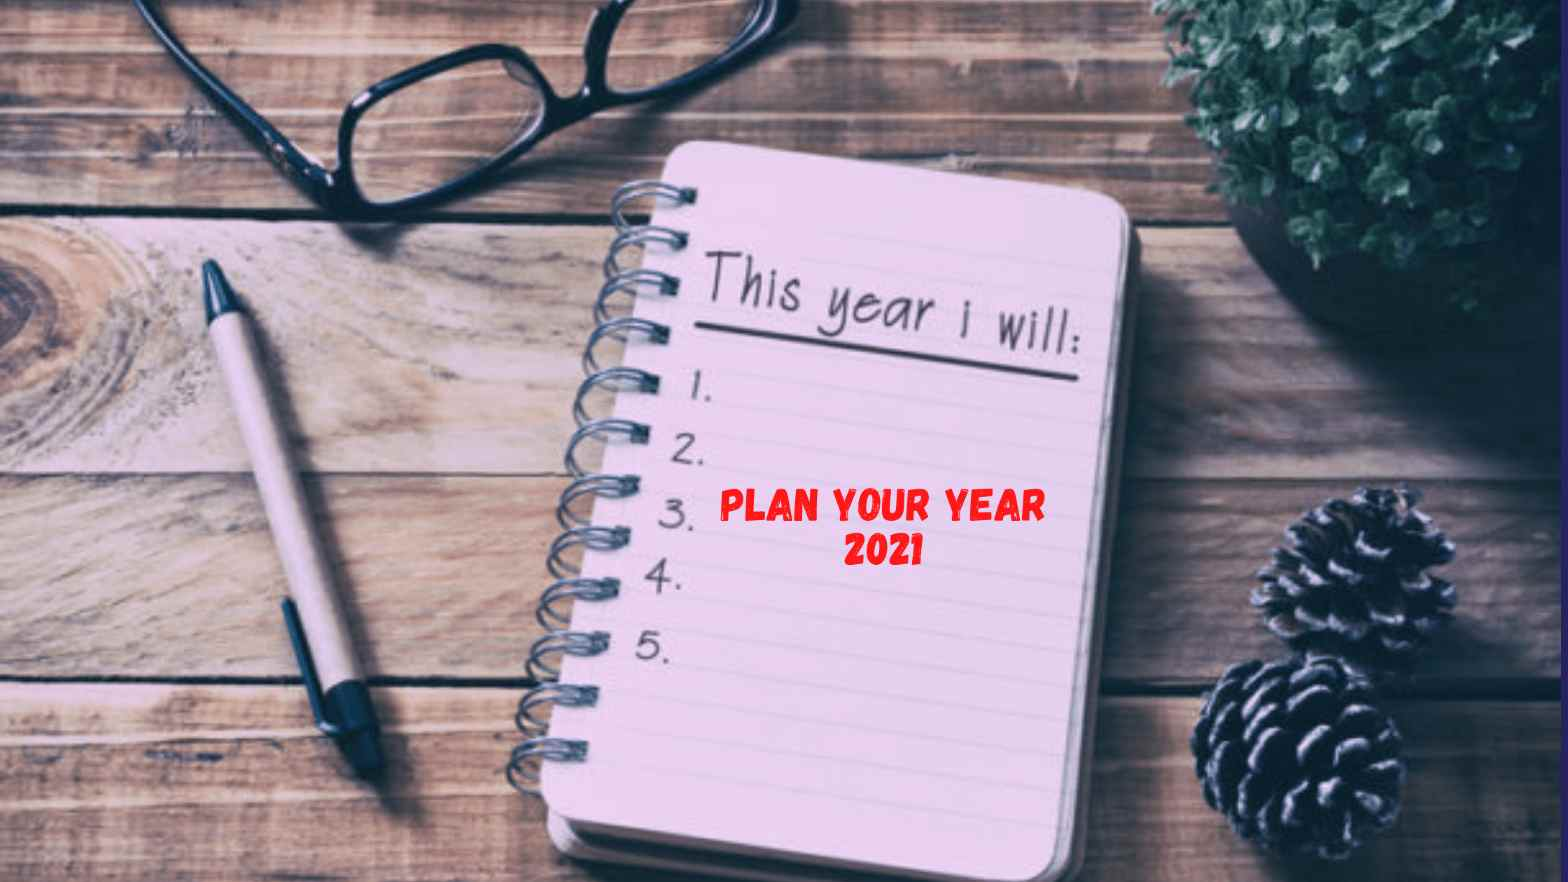 Plan your Year 2021